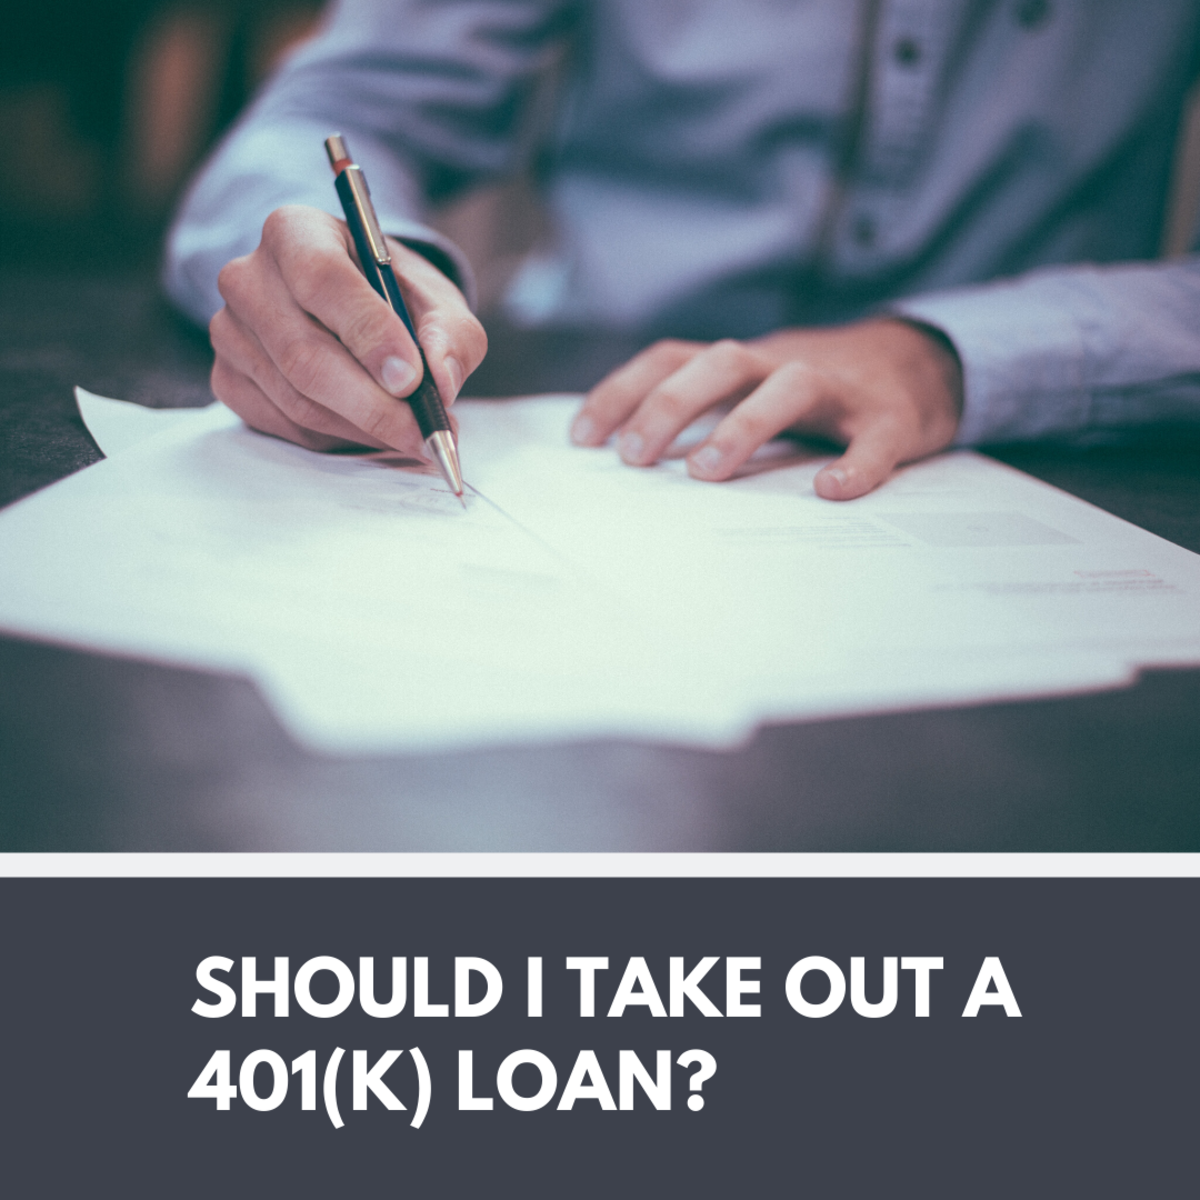 Should I Take out a 401(k) Loan?